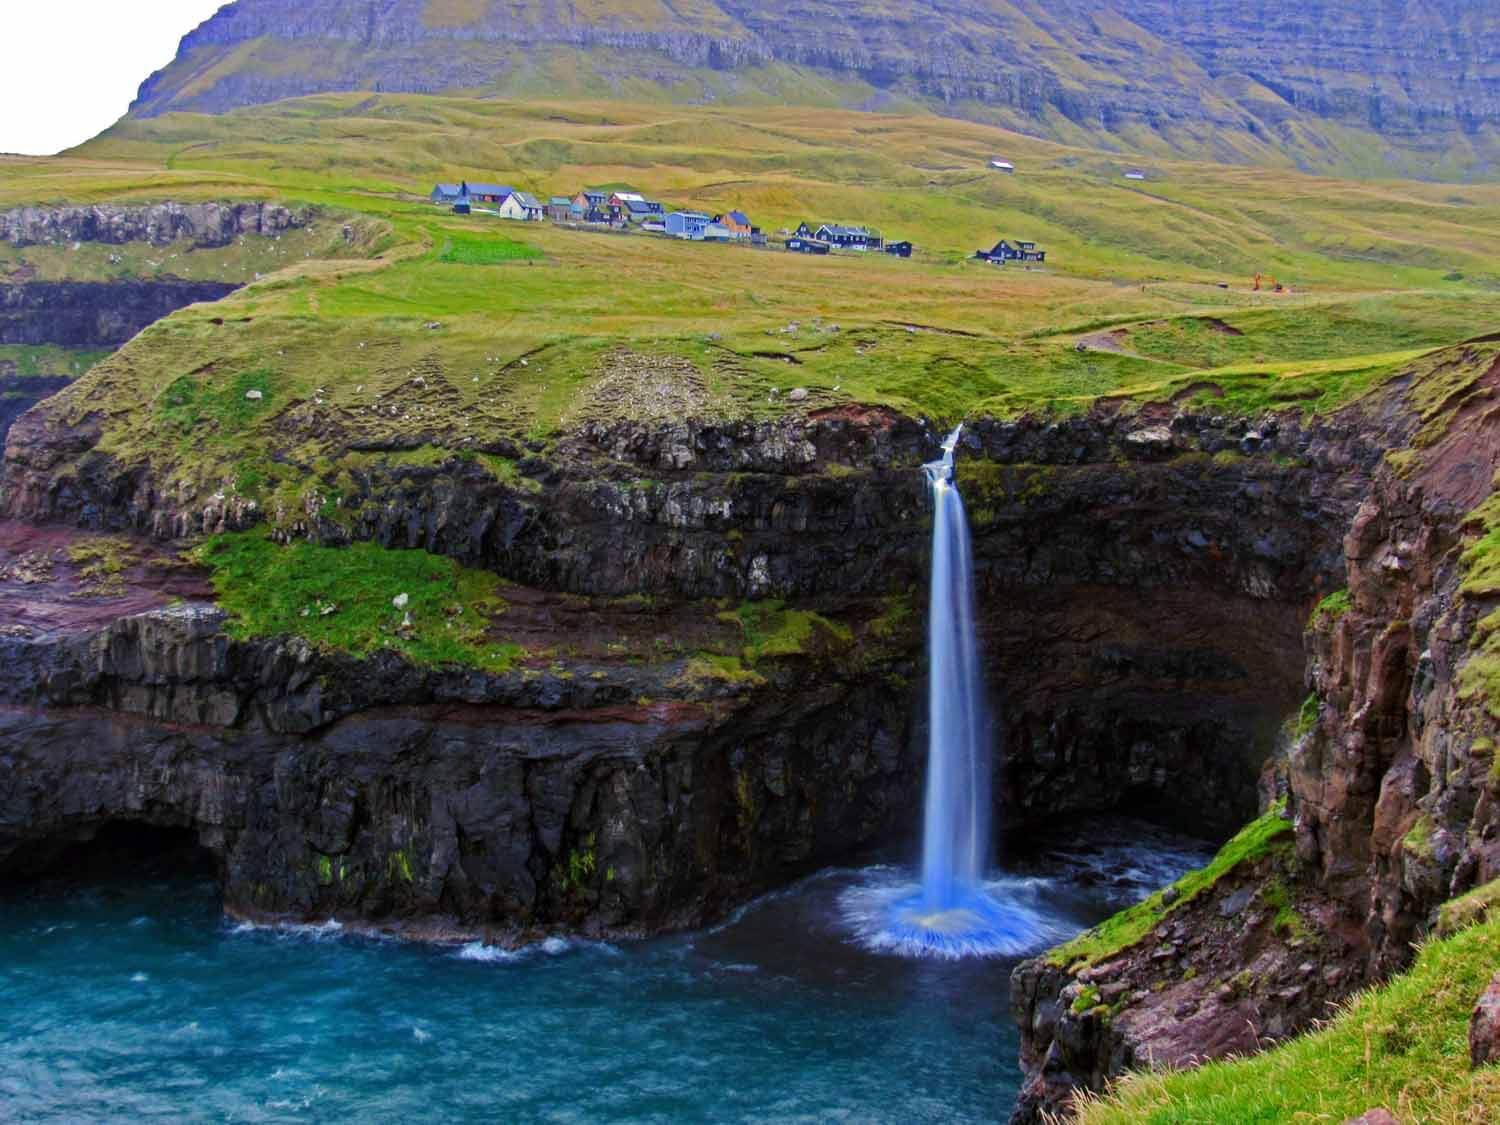 Vágar Island - Vágar it a must! Don't miss the Gásadalur waterfall. A hike around the Faroe's largest lake which will reward you with epic views of a lake looming above the ocean!